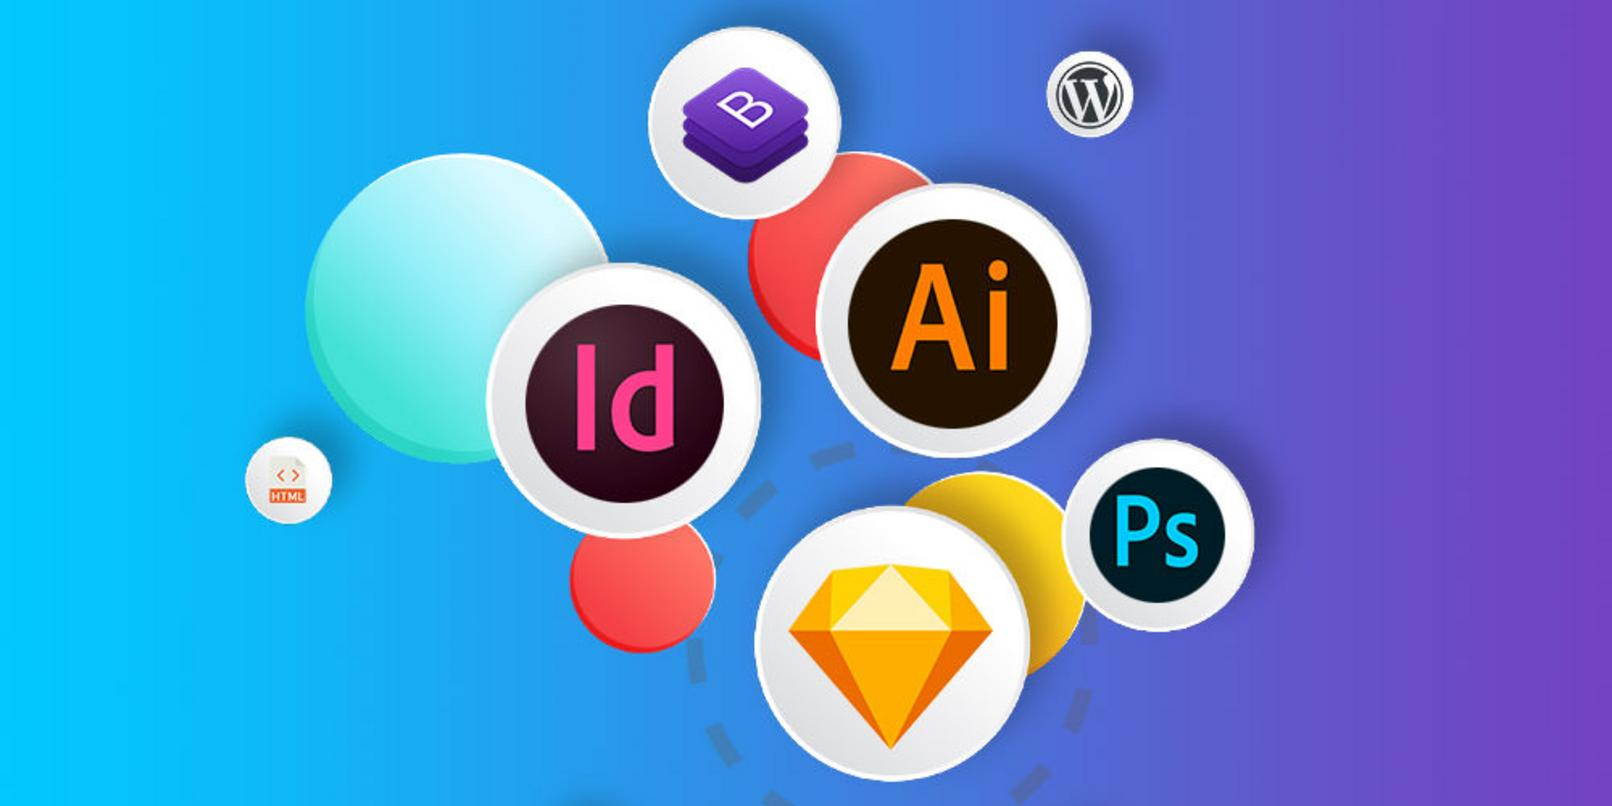 Learn to master Adobe Photoshop, Illustrator, and more for less than $5 per course